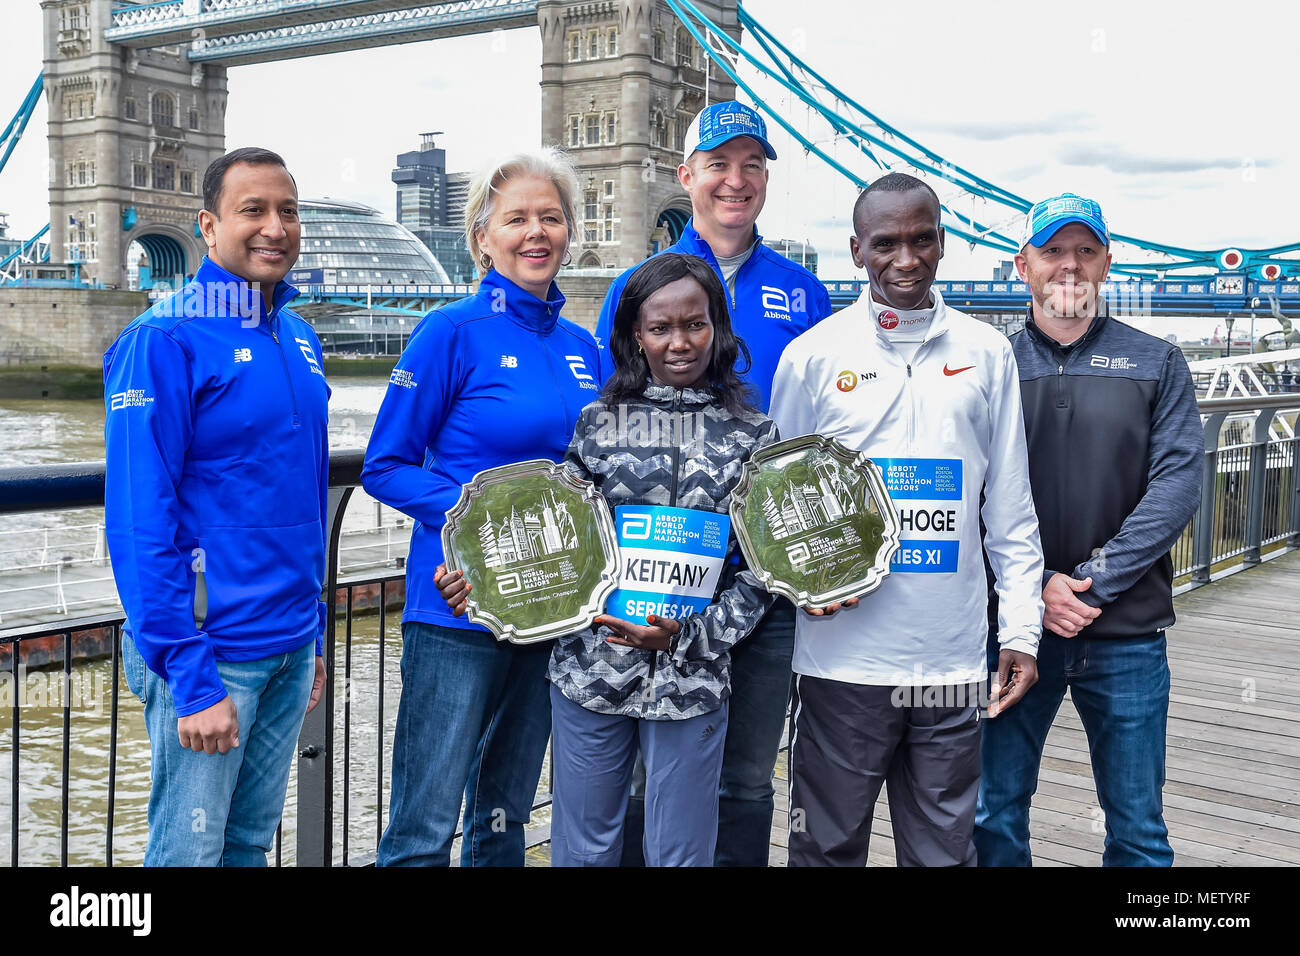 London, UK. 23rd April, 2018. Kenyan Eliud Kipchoge and Mary Keitany together the race officials at Winners presentation after the 2018 Virgin Money London Marathon on Monday, 23 April 2018. London, England. Credit: Taka Wu/Alamy Live News Stock Photo